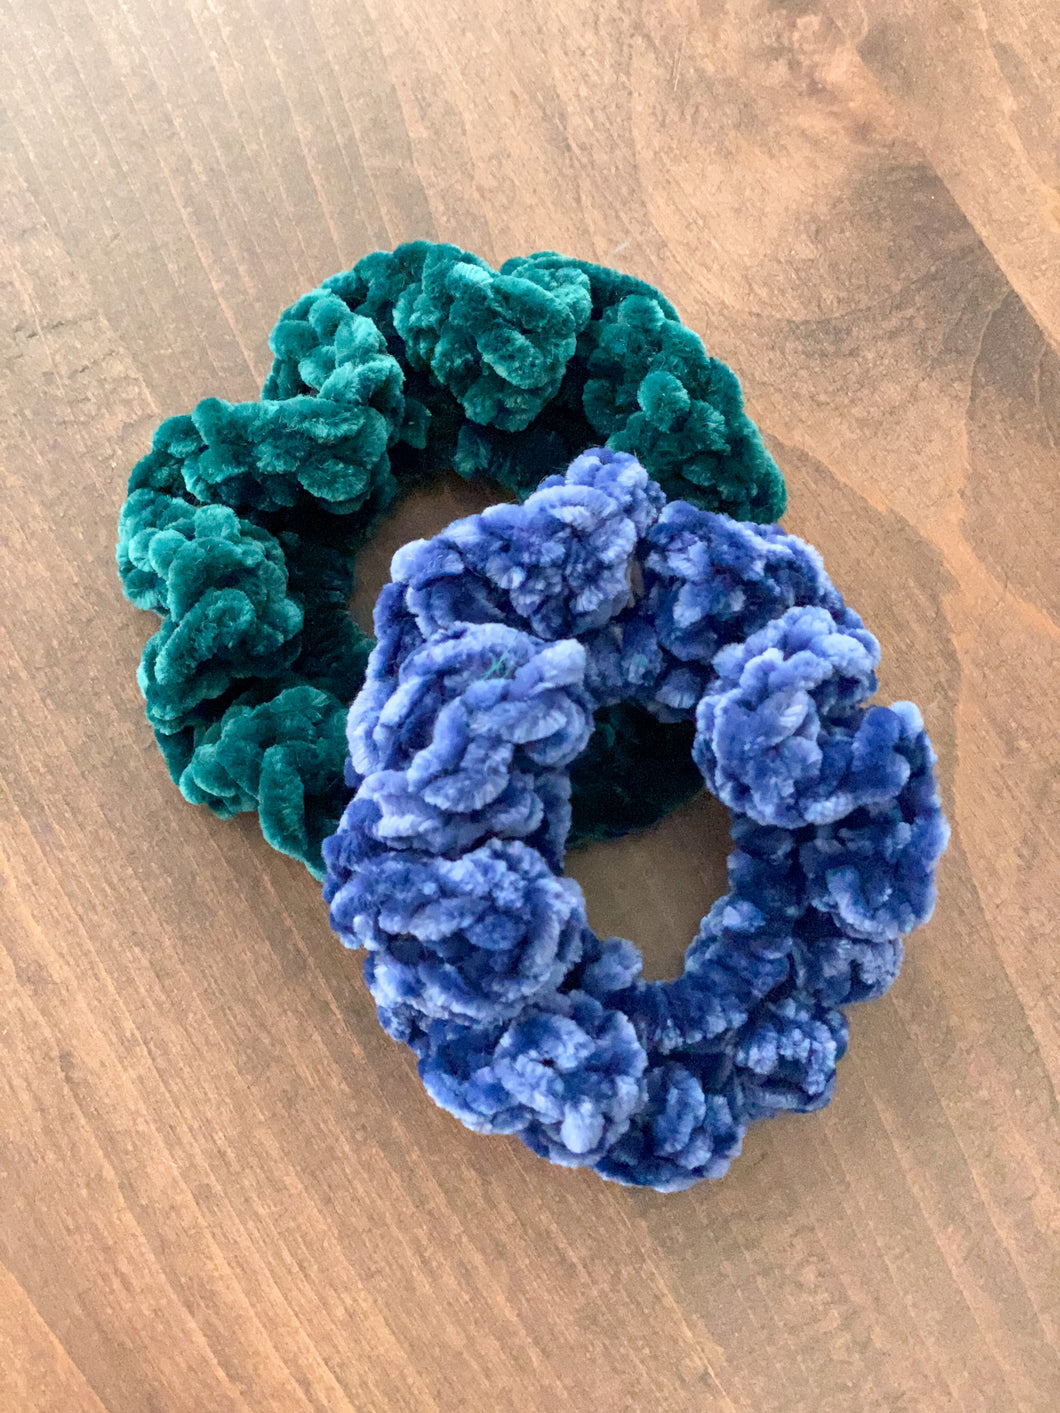 A photo of hand crocheted velvet scrunchies, one in blue and one in green laying on a wooden table.